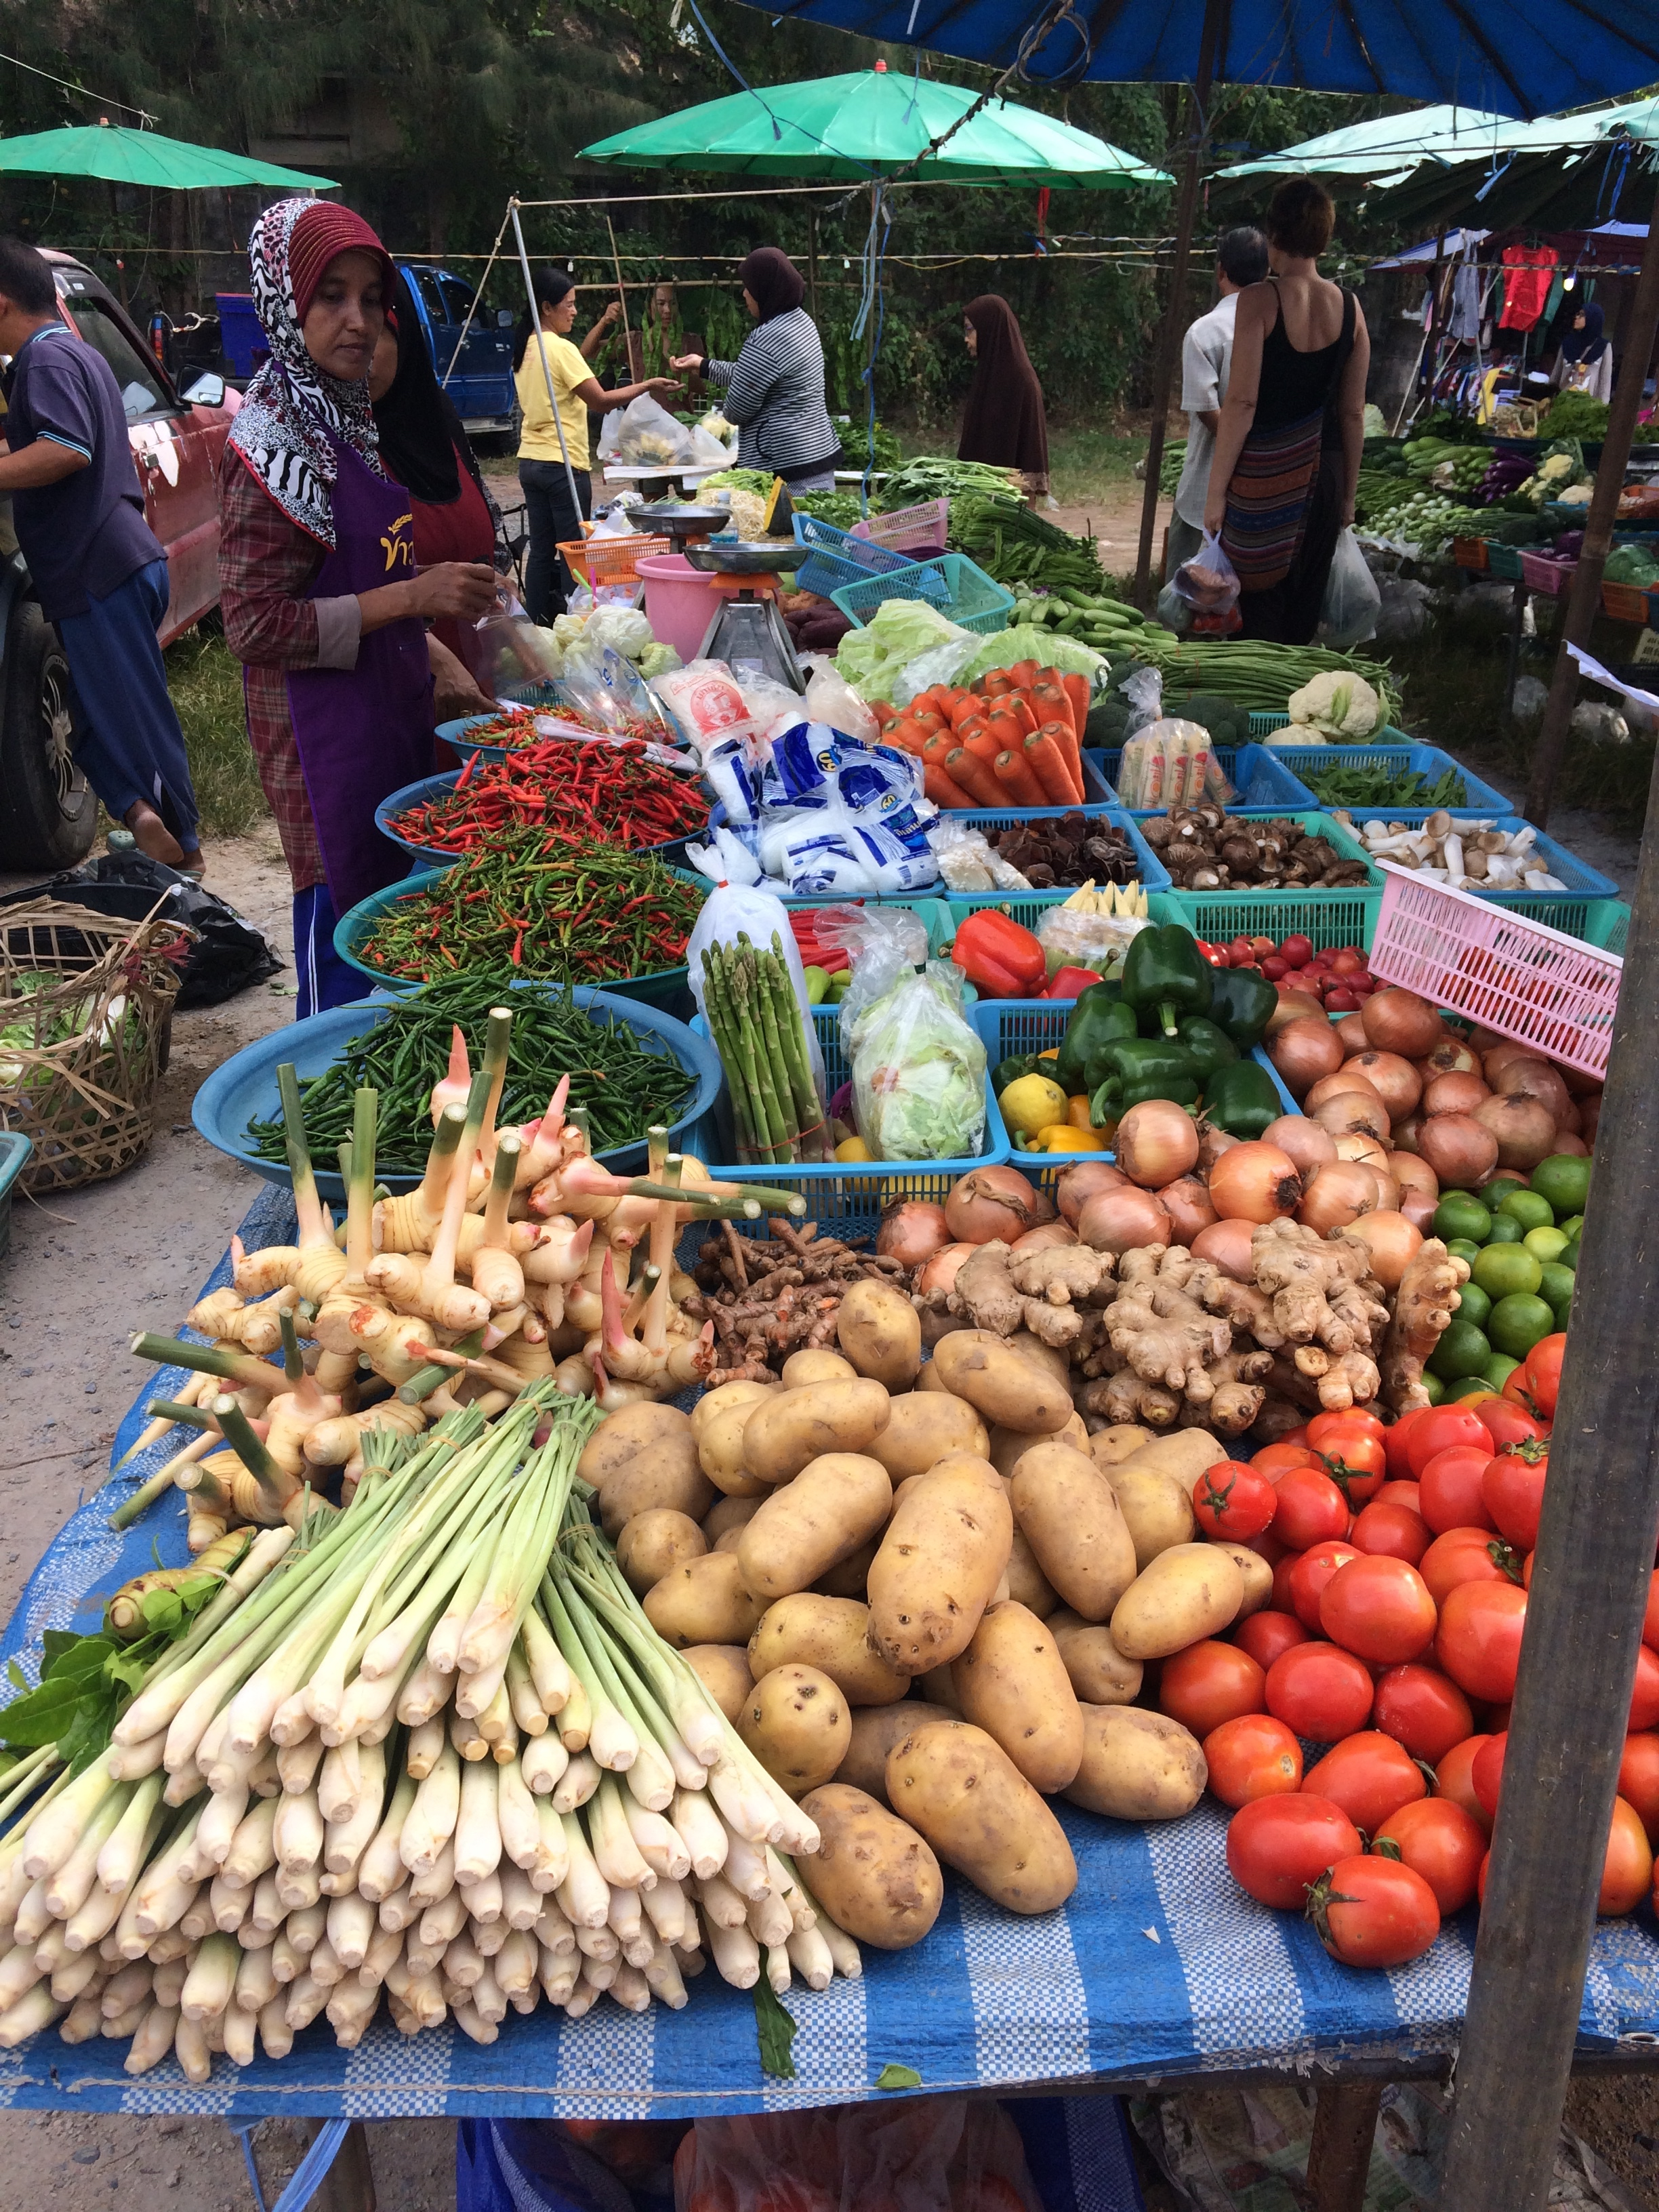 Local market where we get most of our produce.